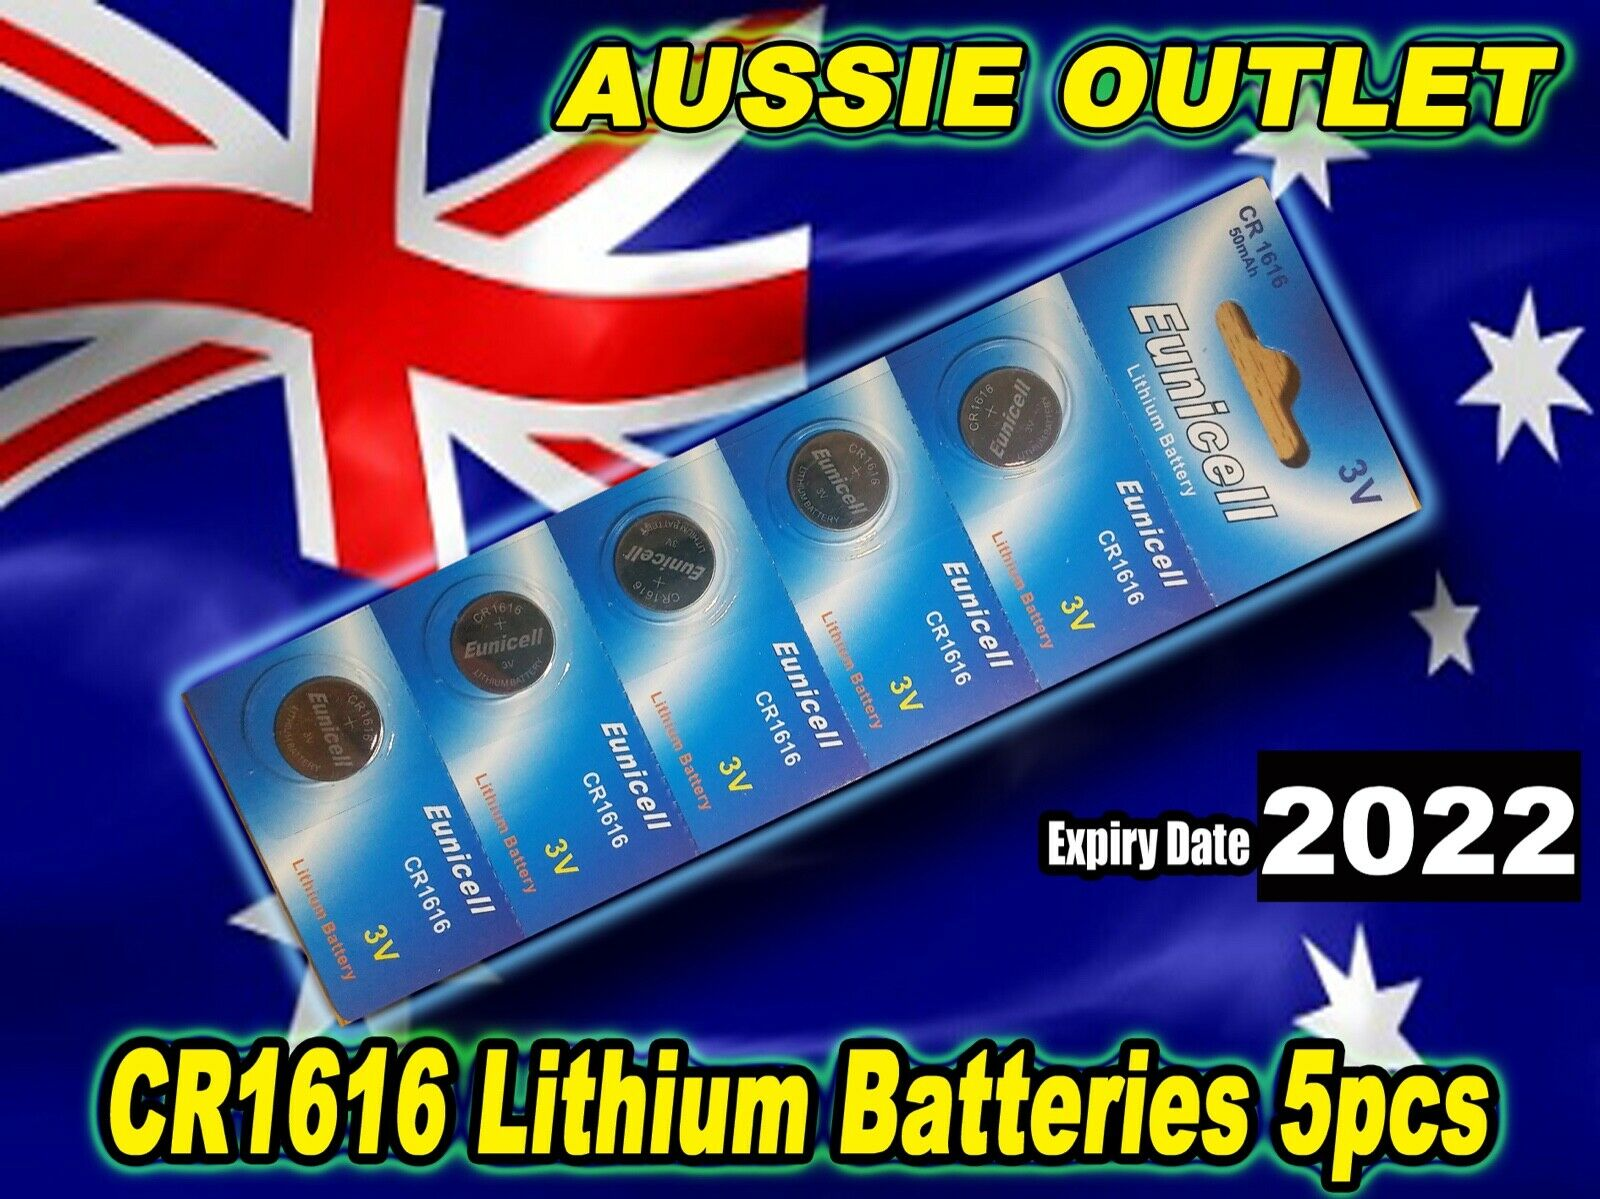 Fast Delivery CR1616 Lithium Cell Batteries 3 Volts - 5 pcs - Aussie Outlet NSW